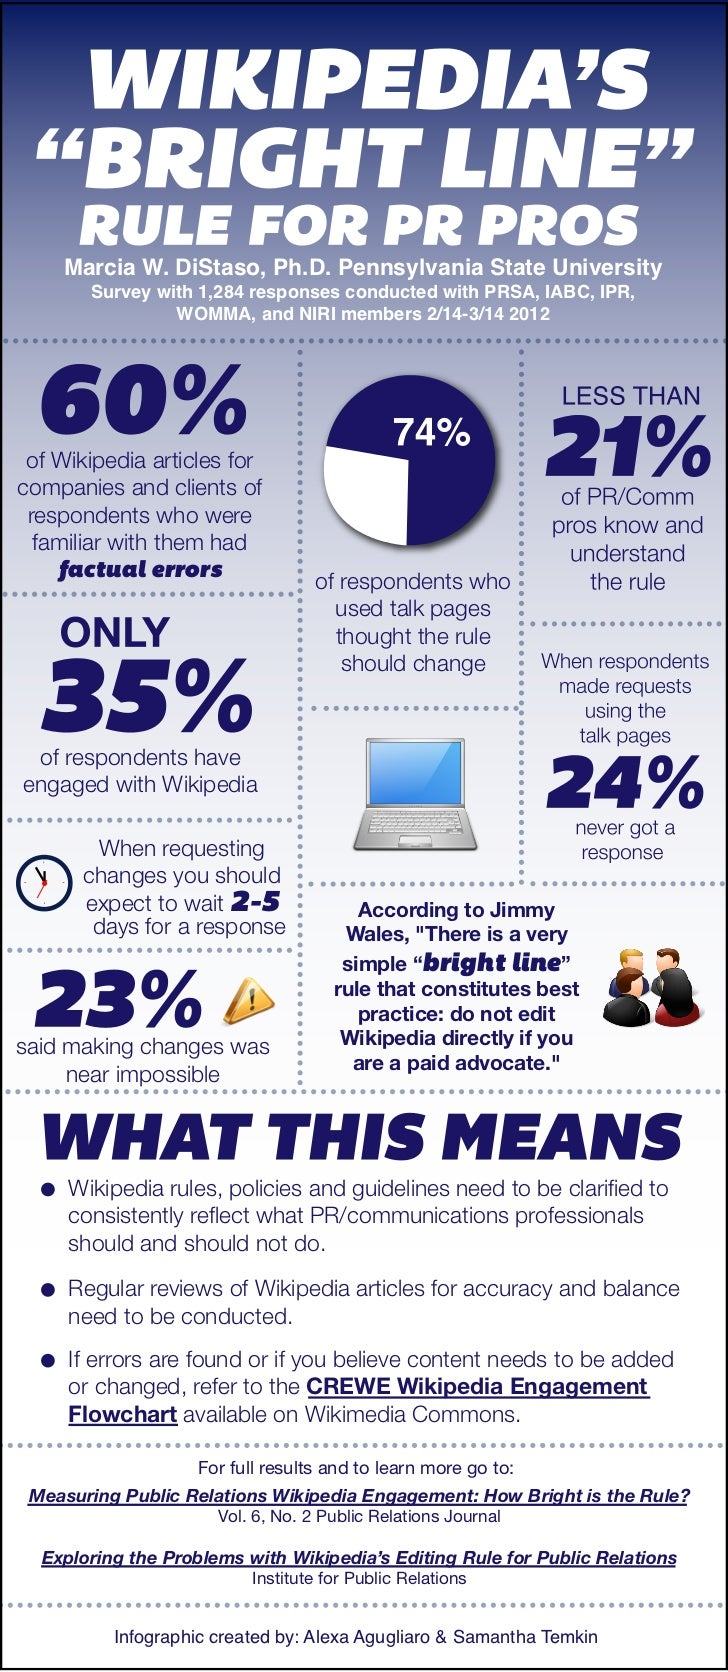 Marcia W. DiStaso, Ph.D. Pennsylvania State University       Survey with 1,284 responses conducted with PRSA, IABC, IPR,  ...